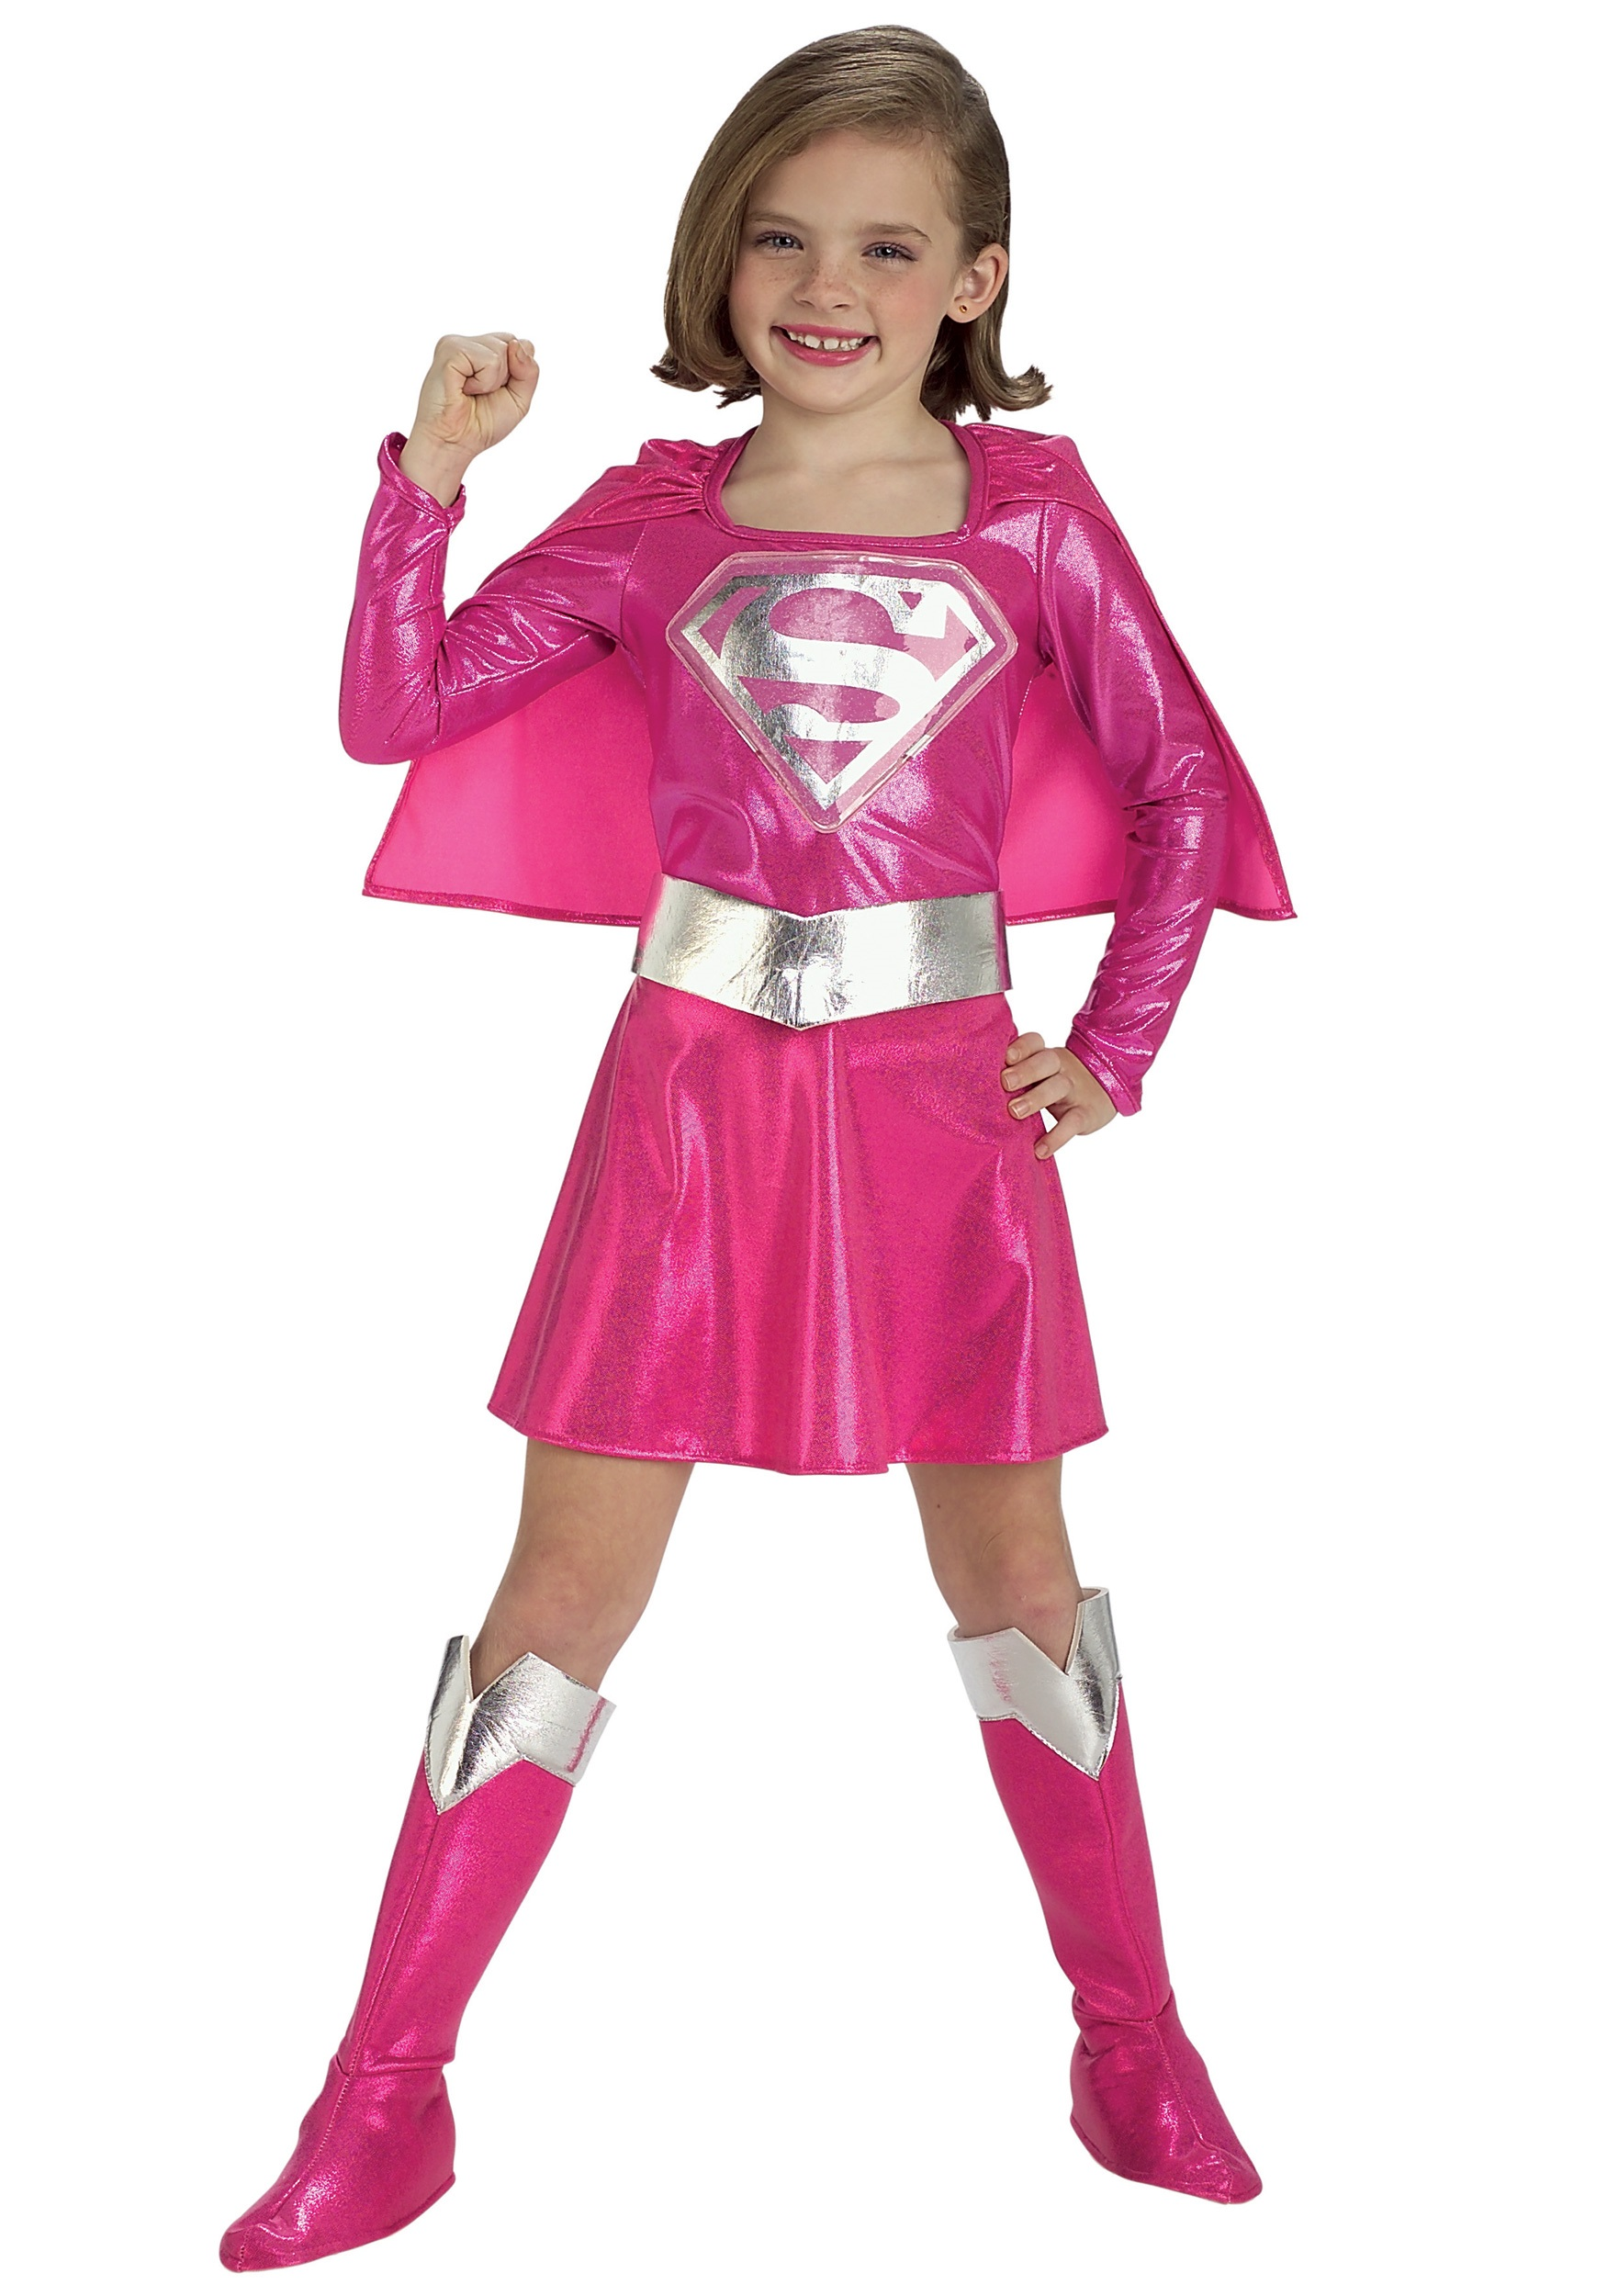 Pink Supergirl Costume  sc 1 st  Halloween Costume & Kids Pink Supergirl Costume - Girls Superhero Halloween Costumes